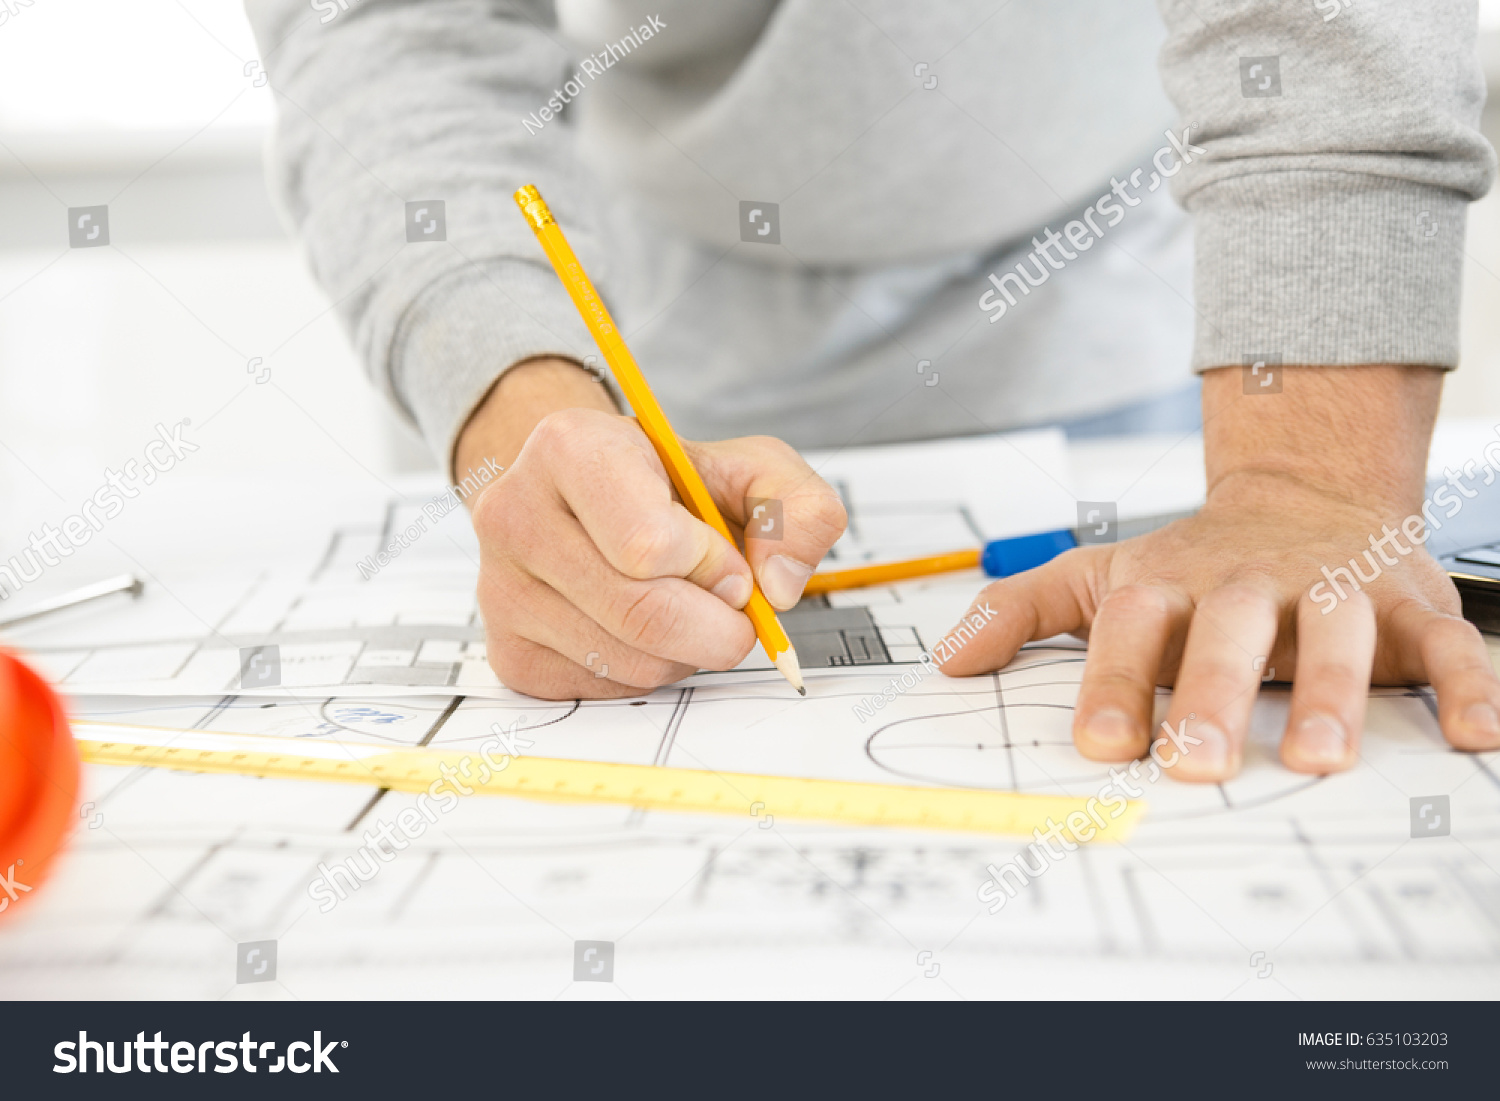 Cropped close hands male architect drawing stock photo 635103203 cropped close up of hands of a male architect drawing on blueprints designing architectural project sketching malvernweather Images